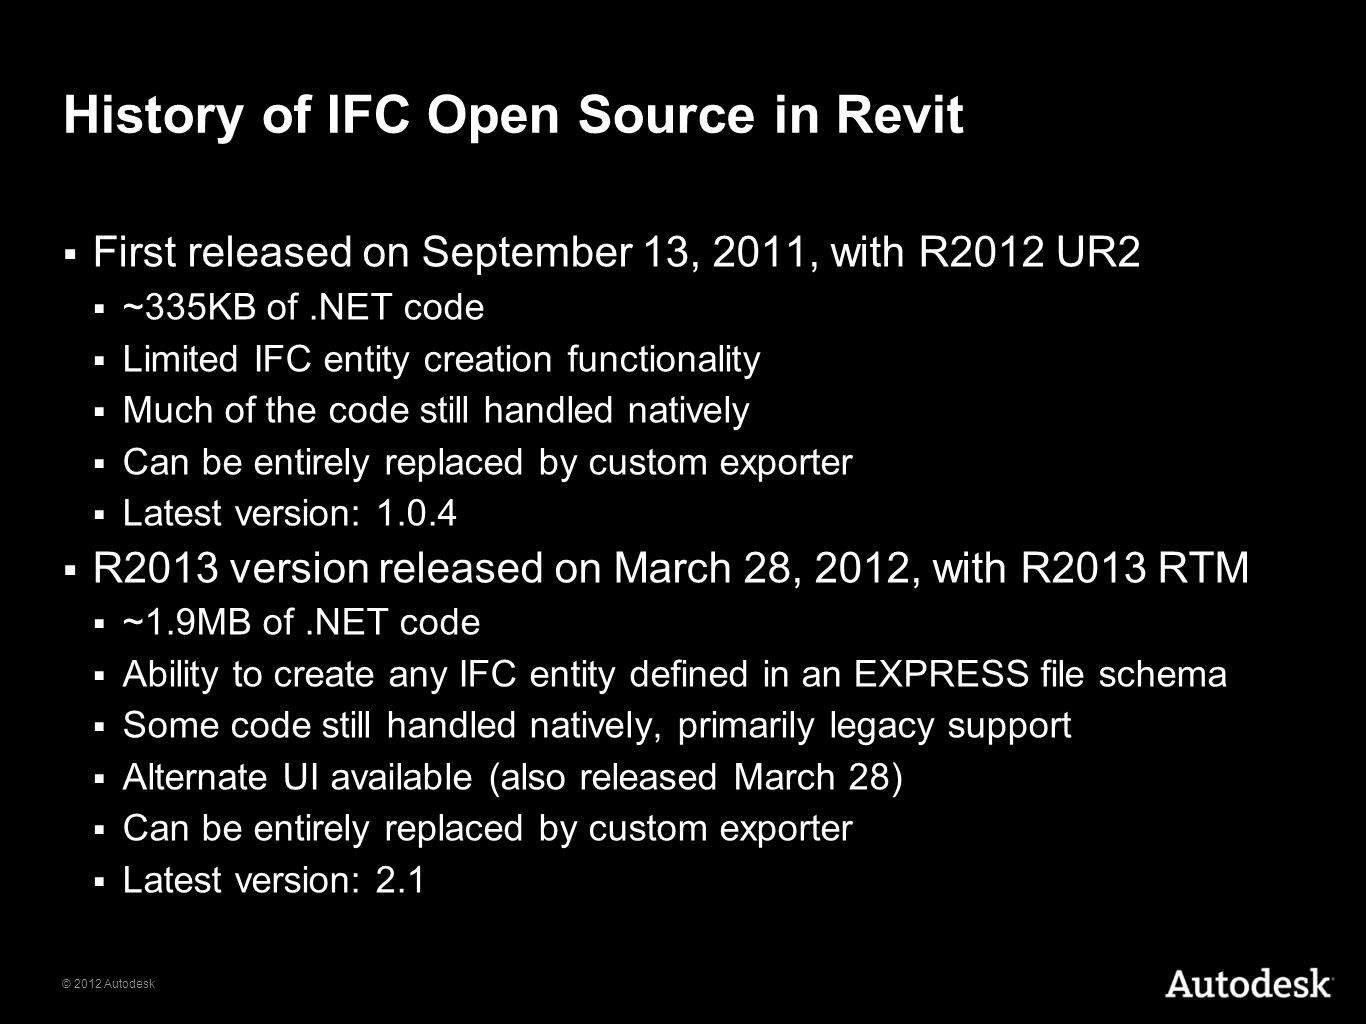 History of IFC Open Source in Revit